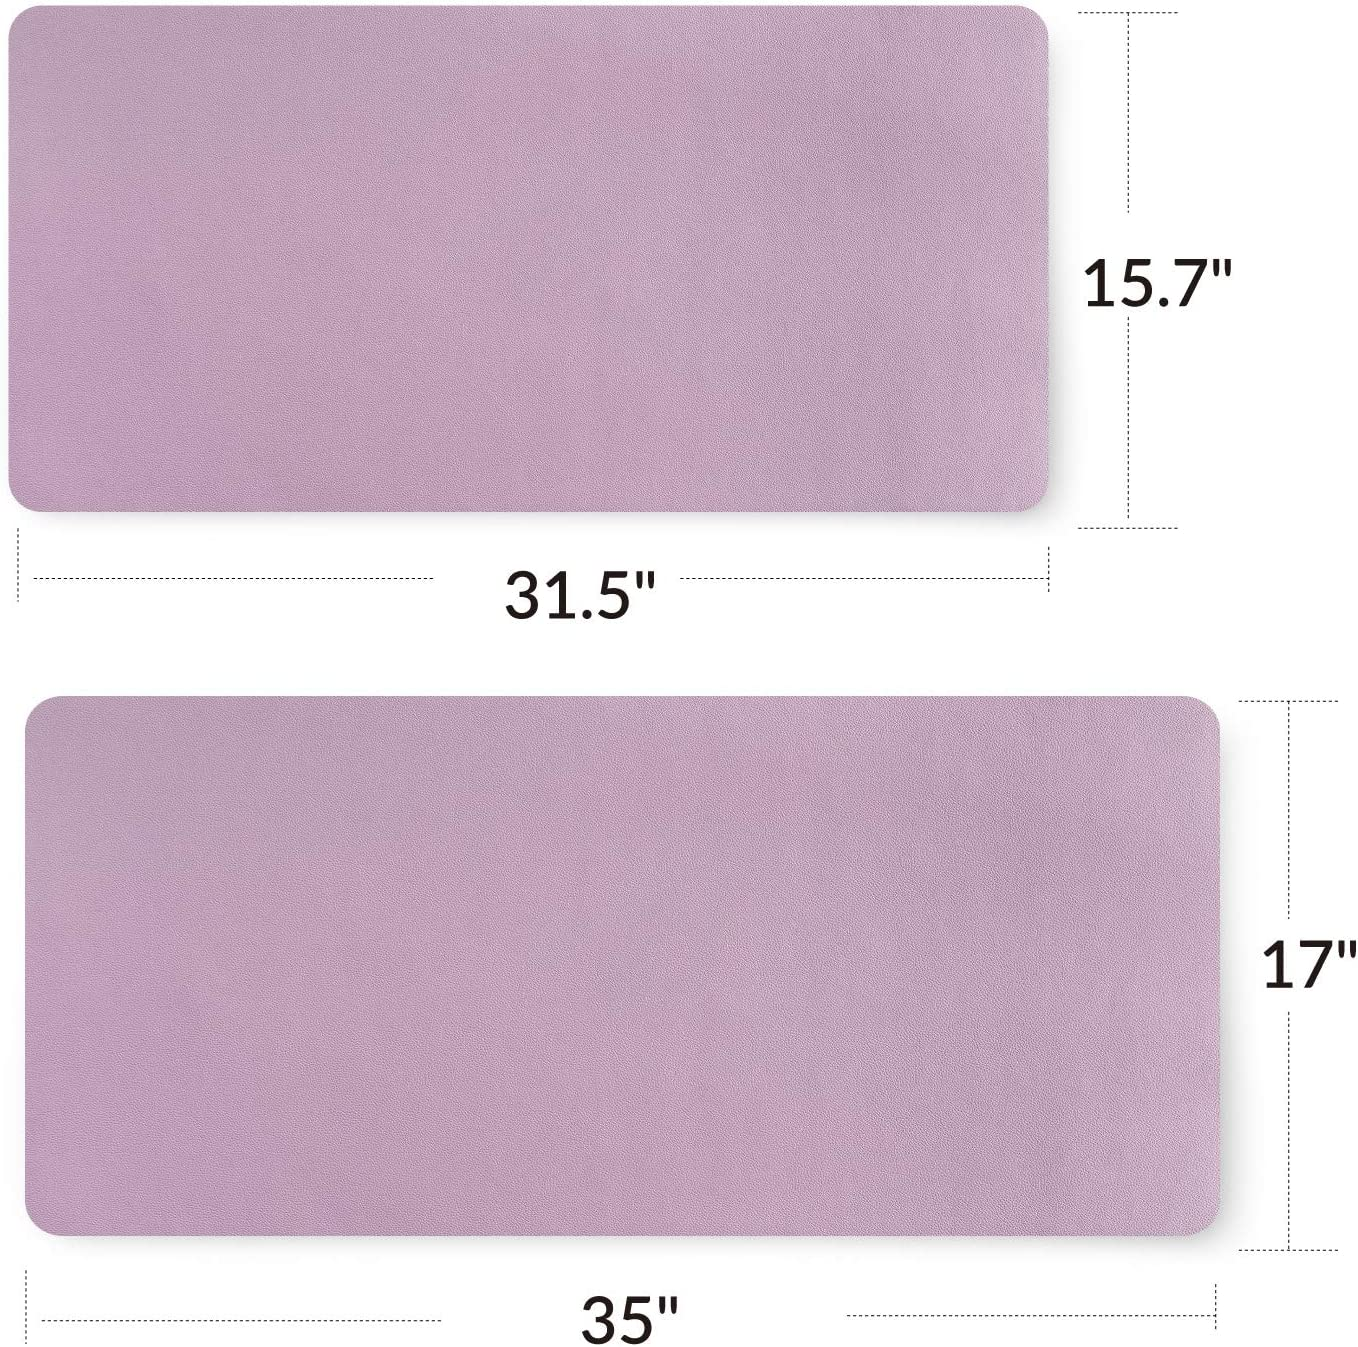 Bedsure Genuine Leather Desk Pad Waterproof Non Slip Lavender Mouse Desk Pad Protector for Office and Home Office Desk Mat Blotter on top of desks Purple, 15.7x31.5 inches Large Computer Desk Mat